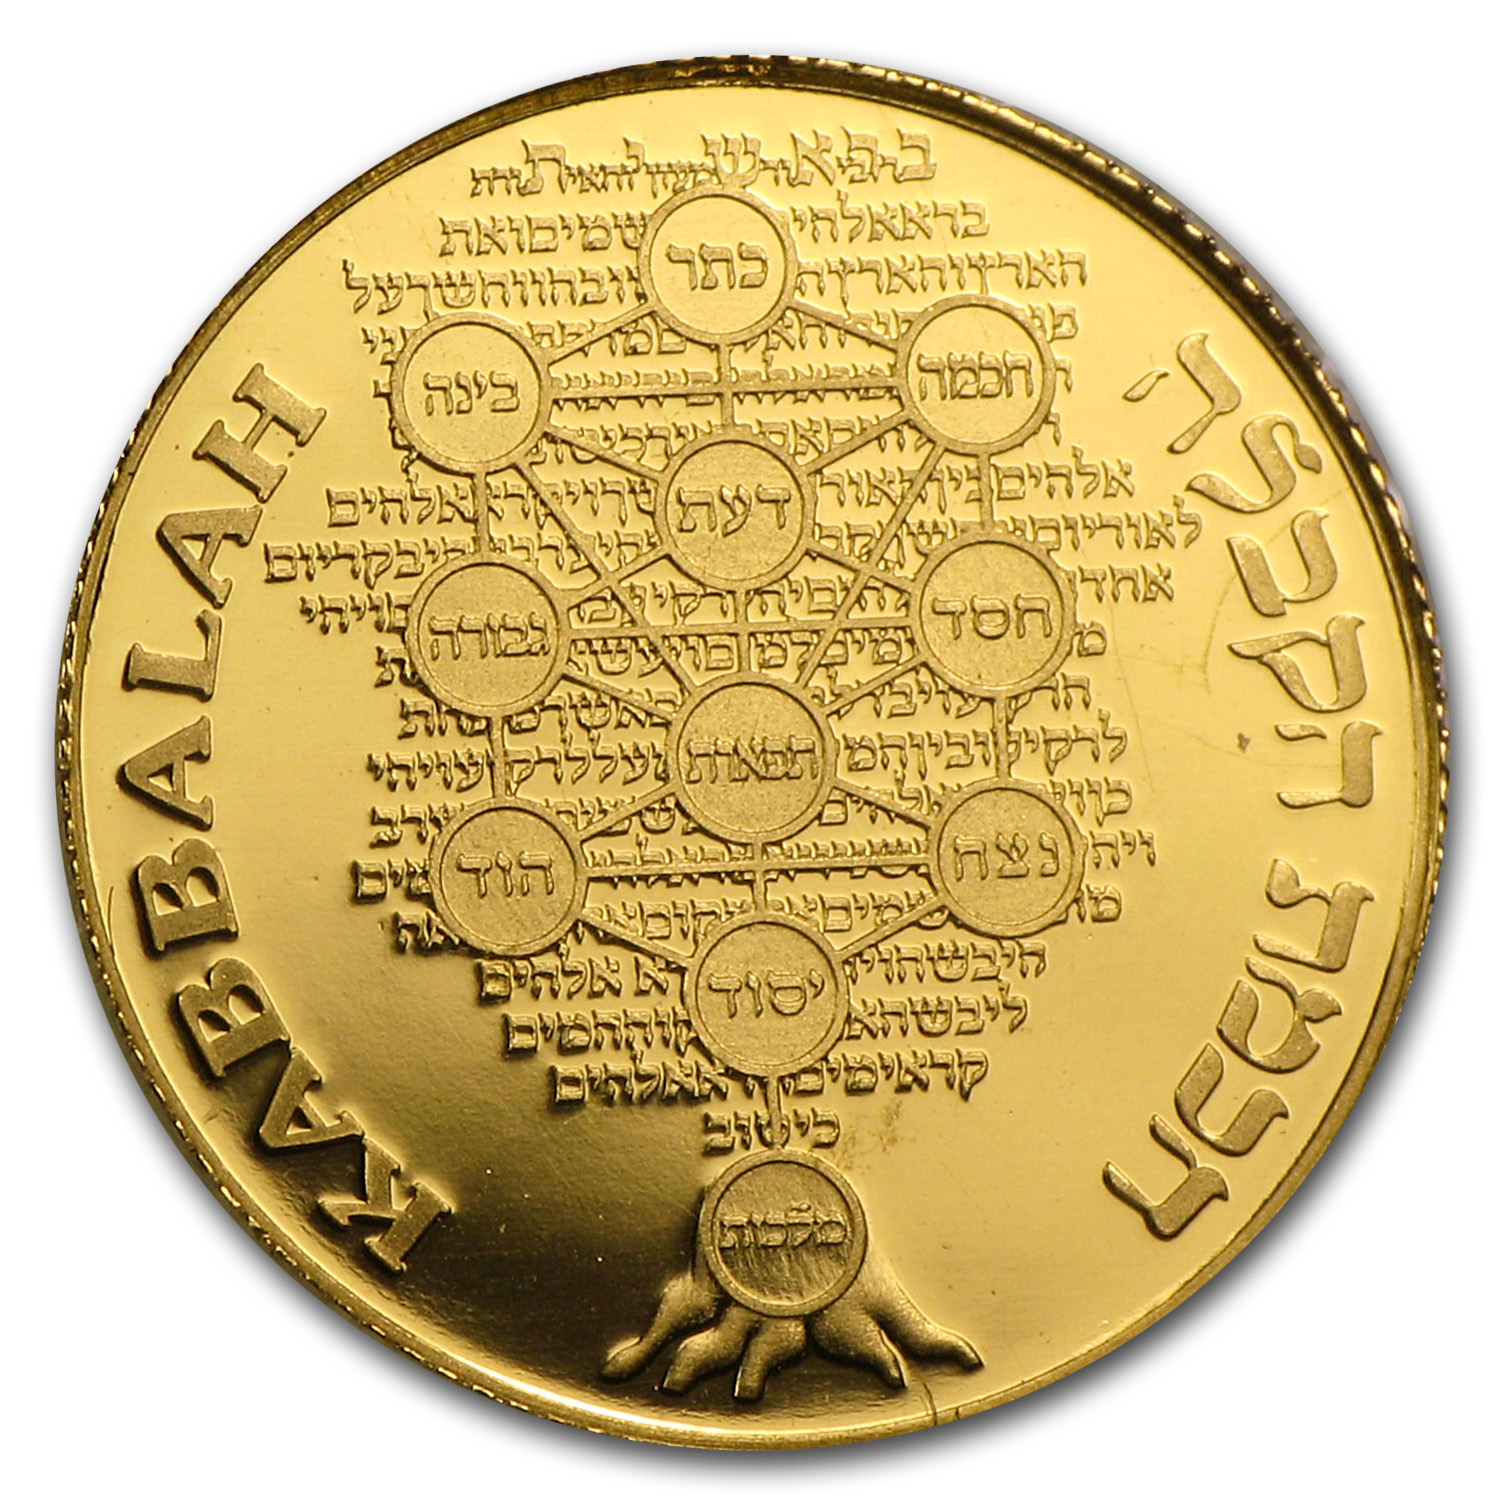 2009 Israel Kabbalah-Smallest Pure Gold Medal